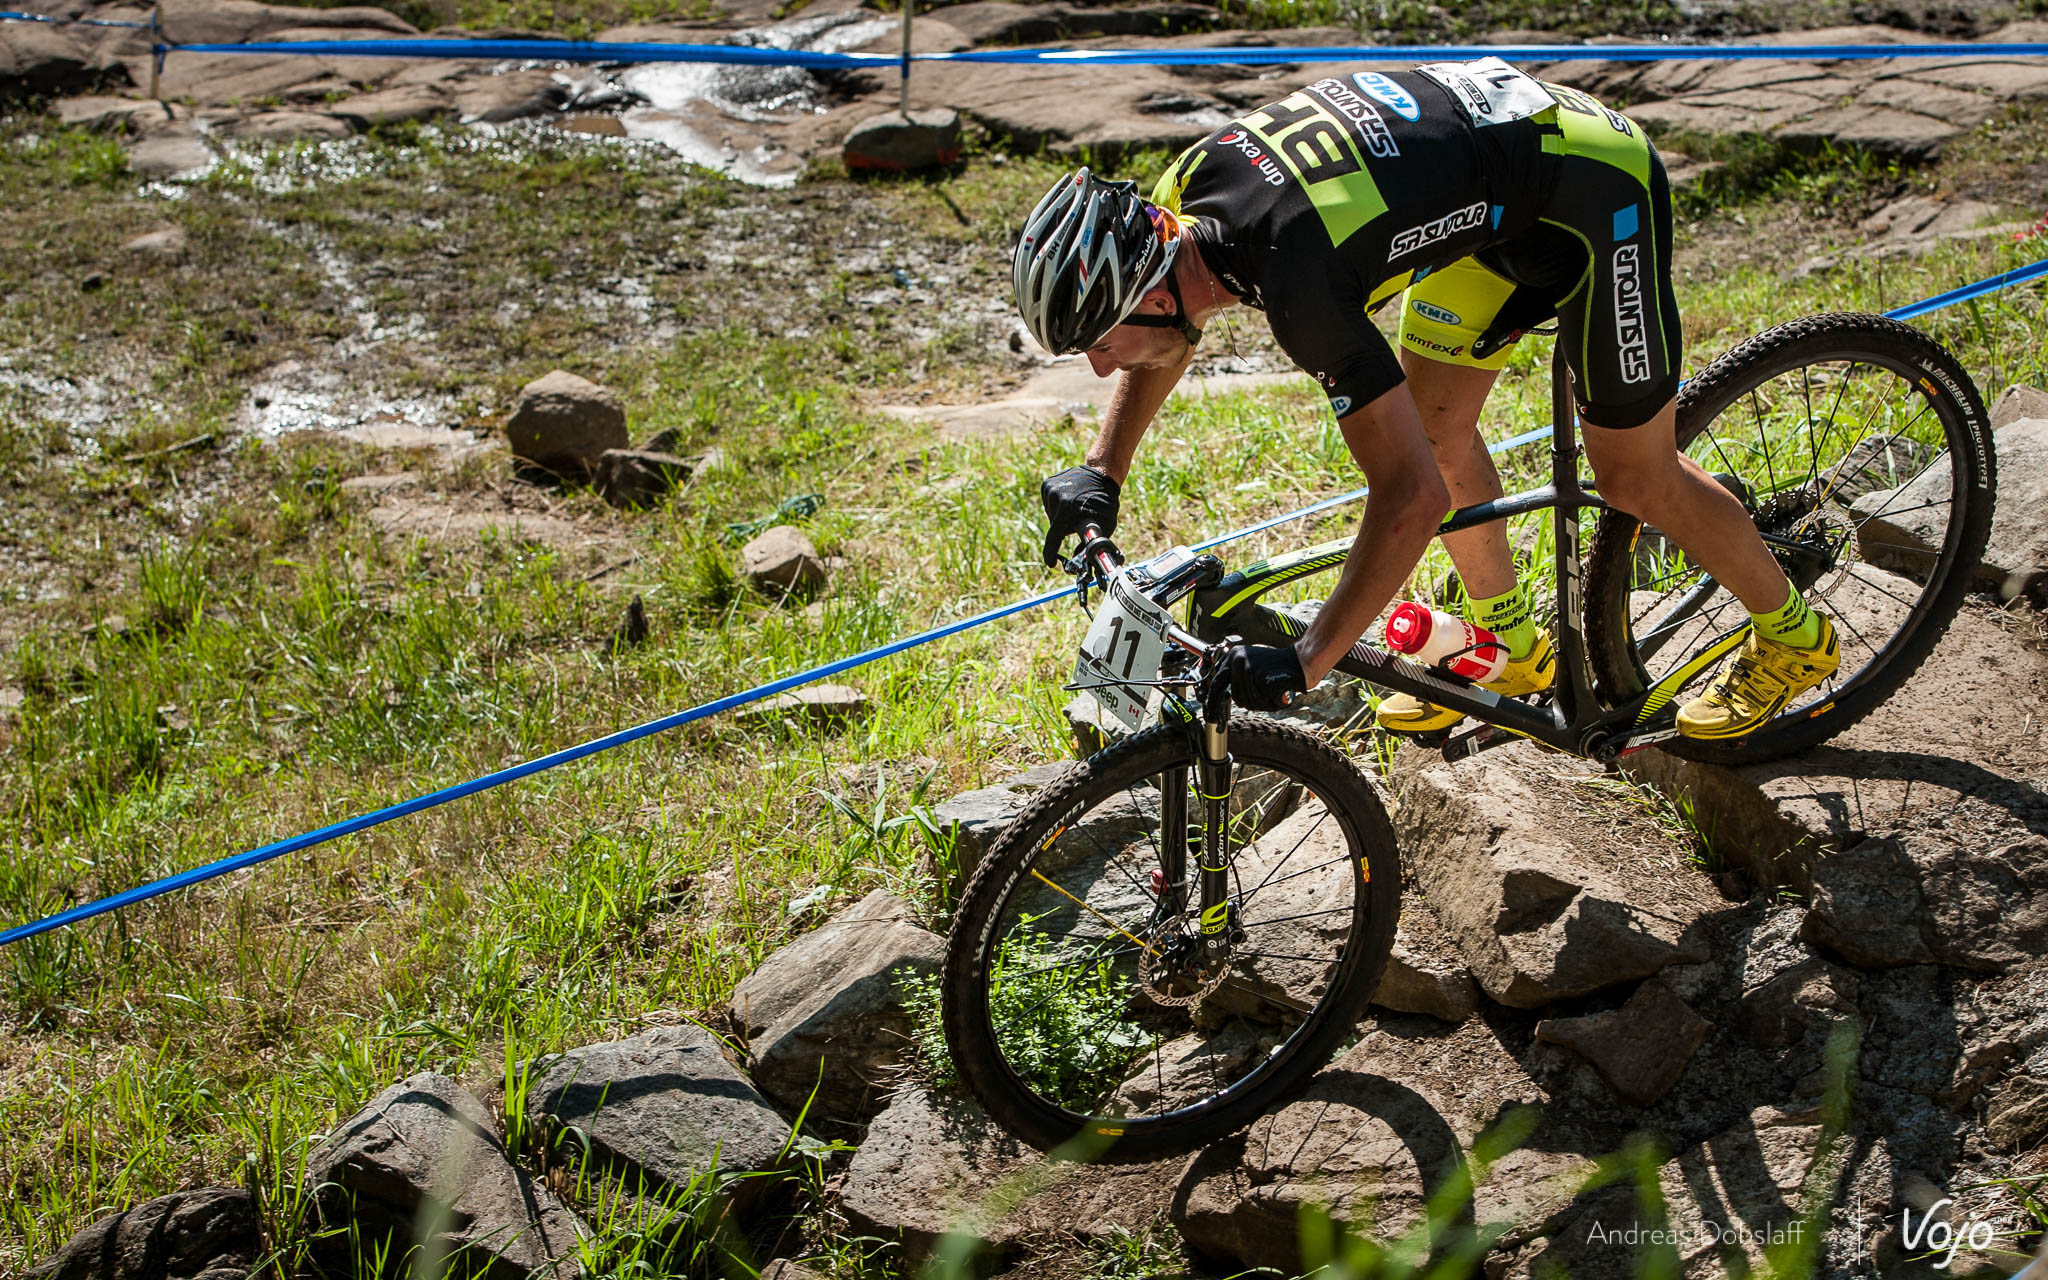 World_Cup_XC_Mont_Saint_Anne_MSA_2015_Carod_Copyright_ADobslaff_VojoMag-4